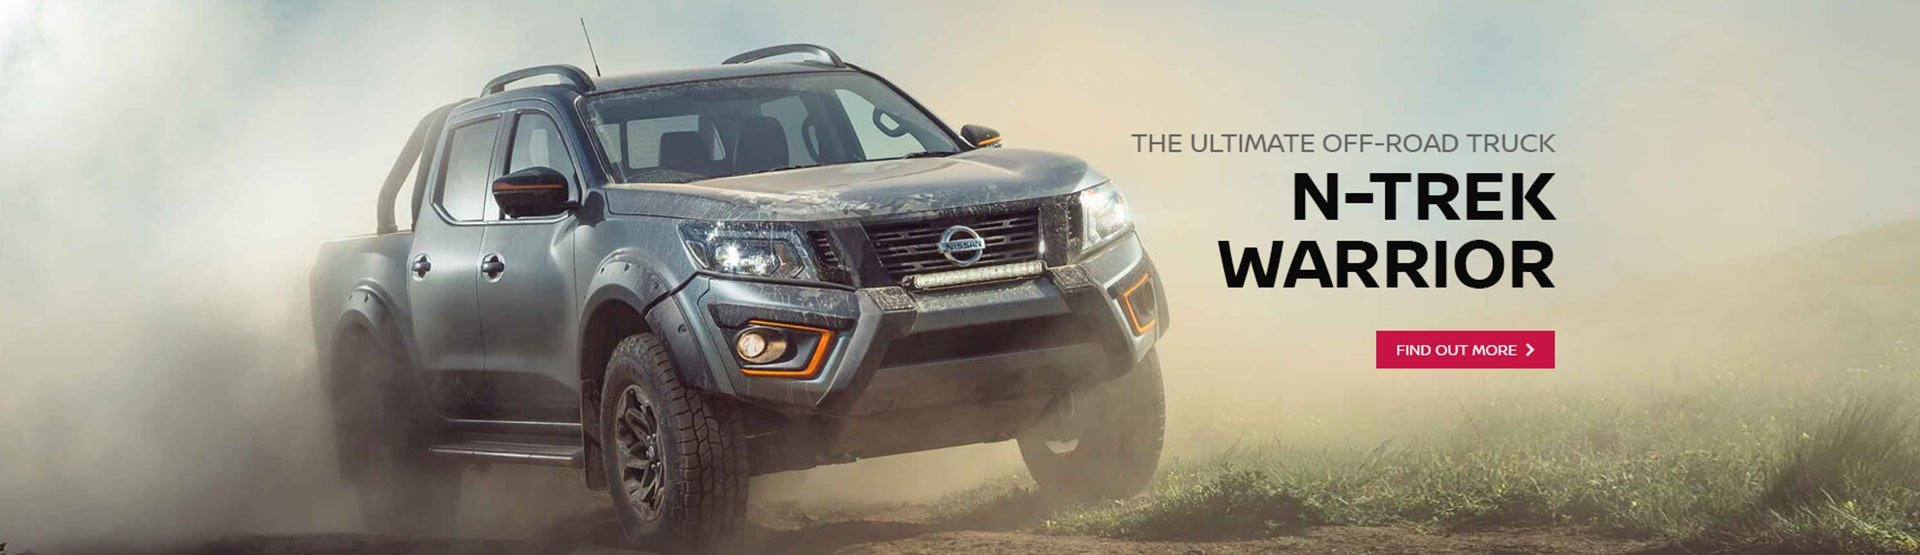 Find out more about the Nissan Navara N-Trek Warrior